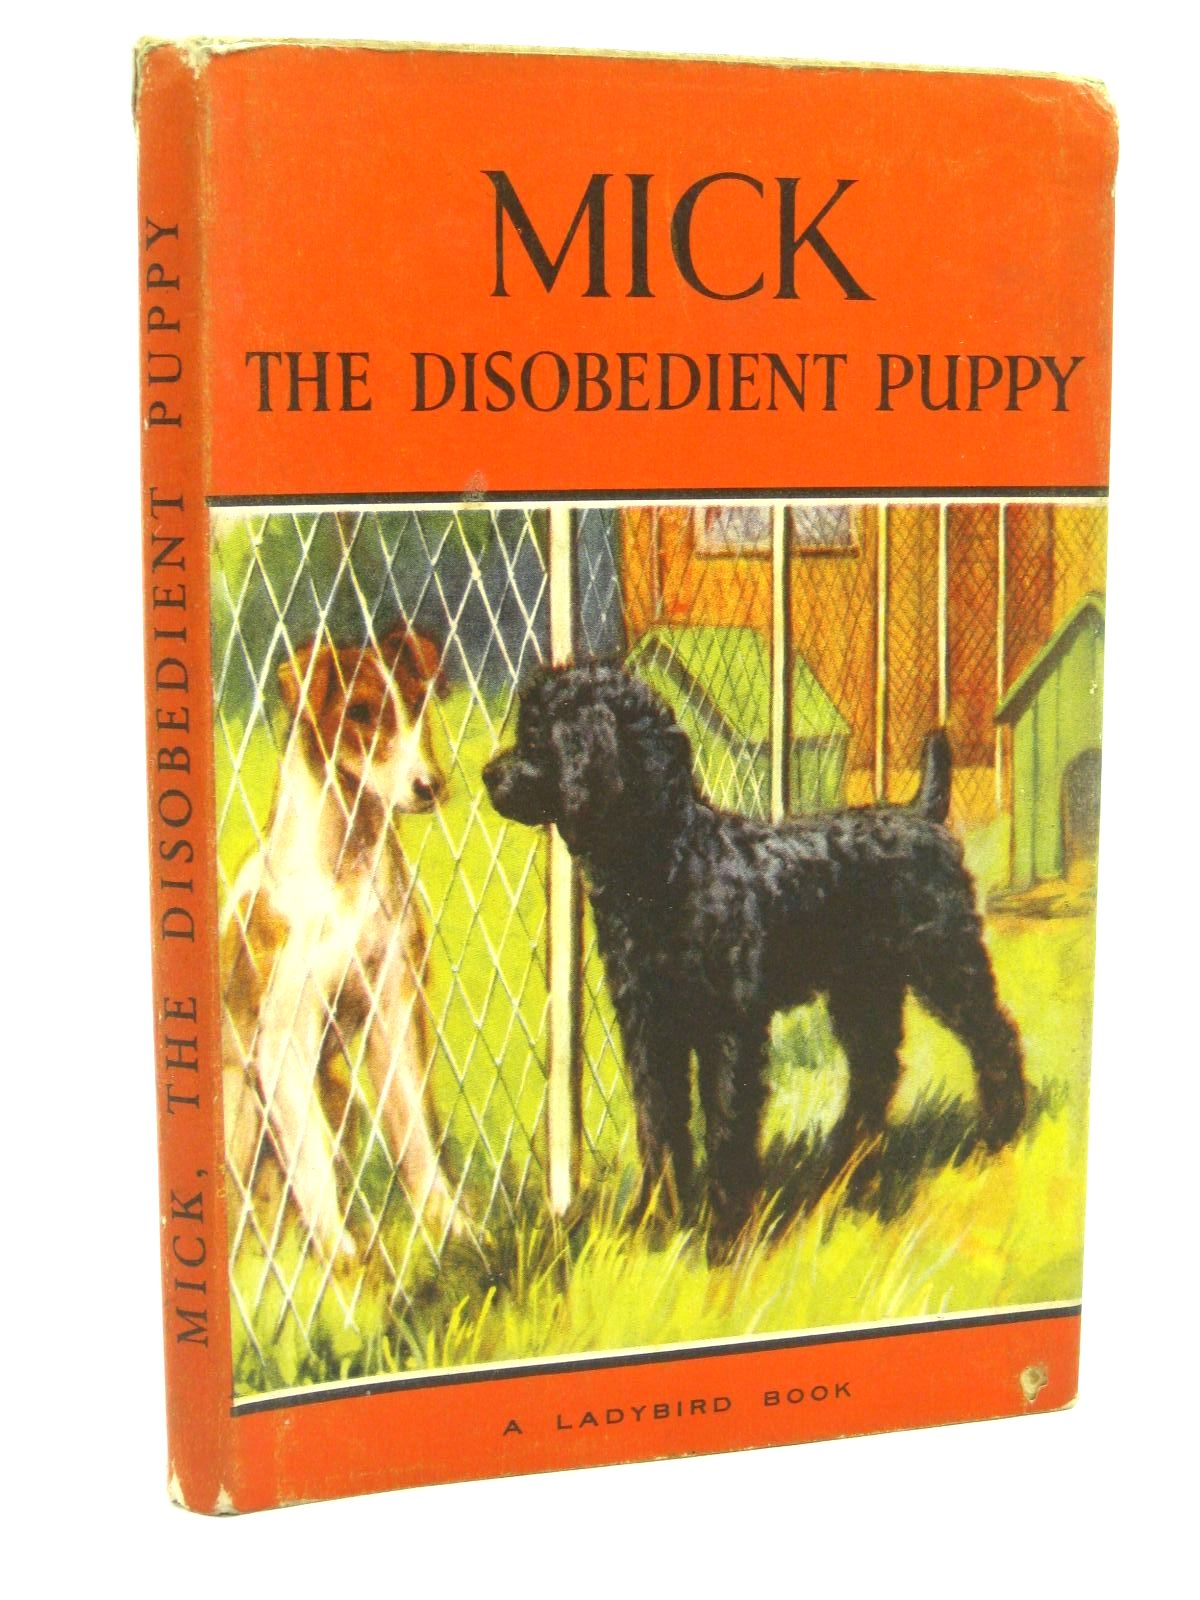 Photo of MICK THE DISOBEDIENT PUPPY written by Barr, Noel illustrated by Hickling, P.B. published by Wills & Hepworth Ltd. (STOCK CODE: 1316804)  for sale by Stella & Rose's Books